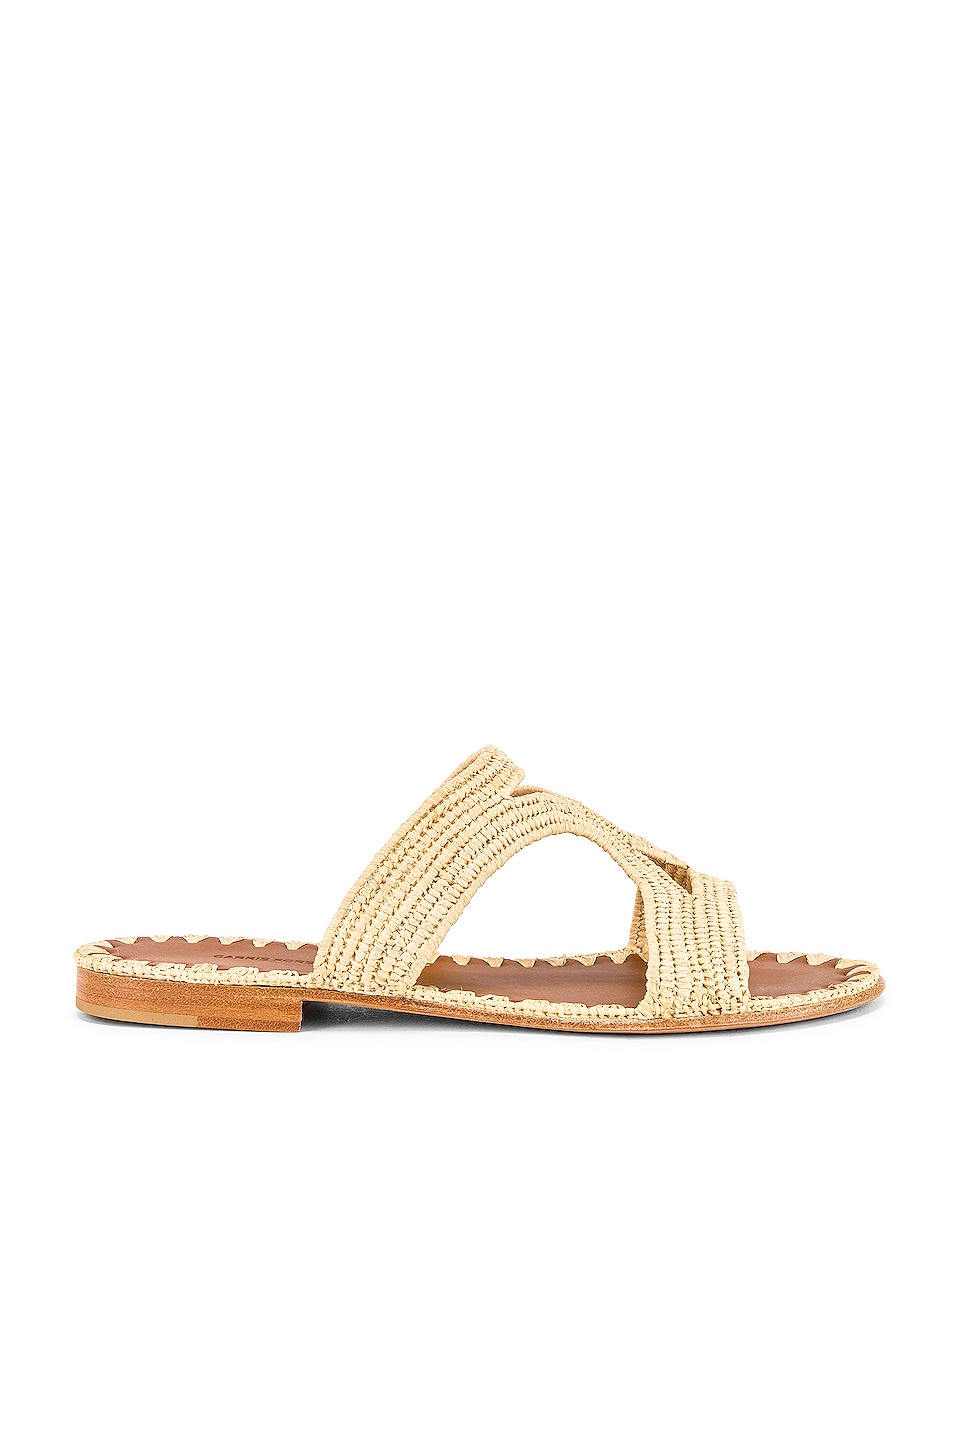 Carrie Forbes Moha Slide in Naturel